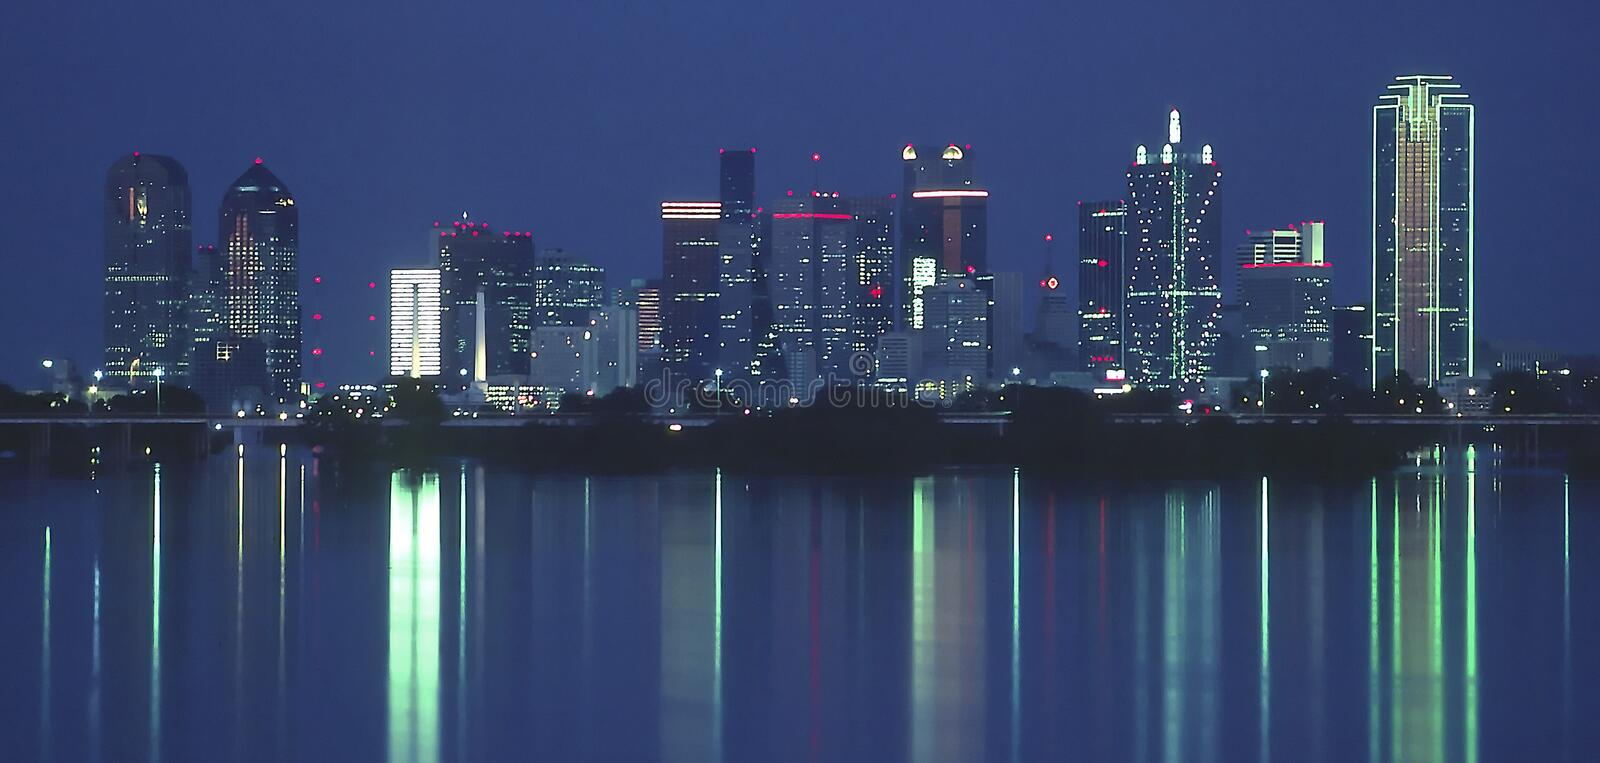 Dallas at Night. Dallas Texas Skyline at night with reflection